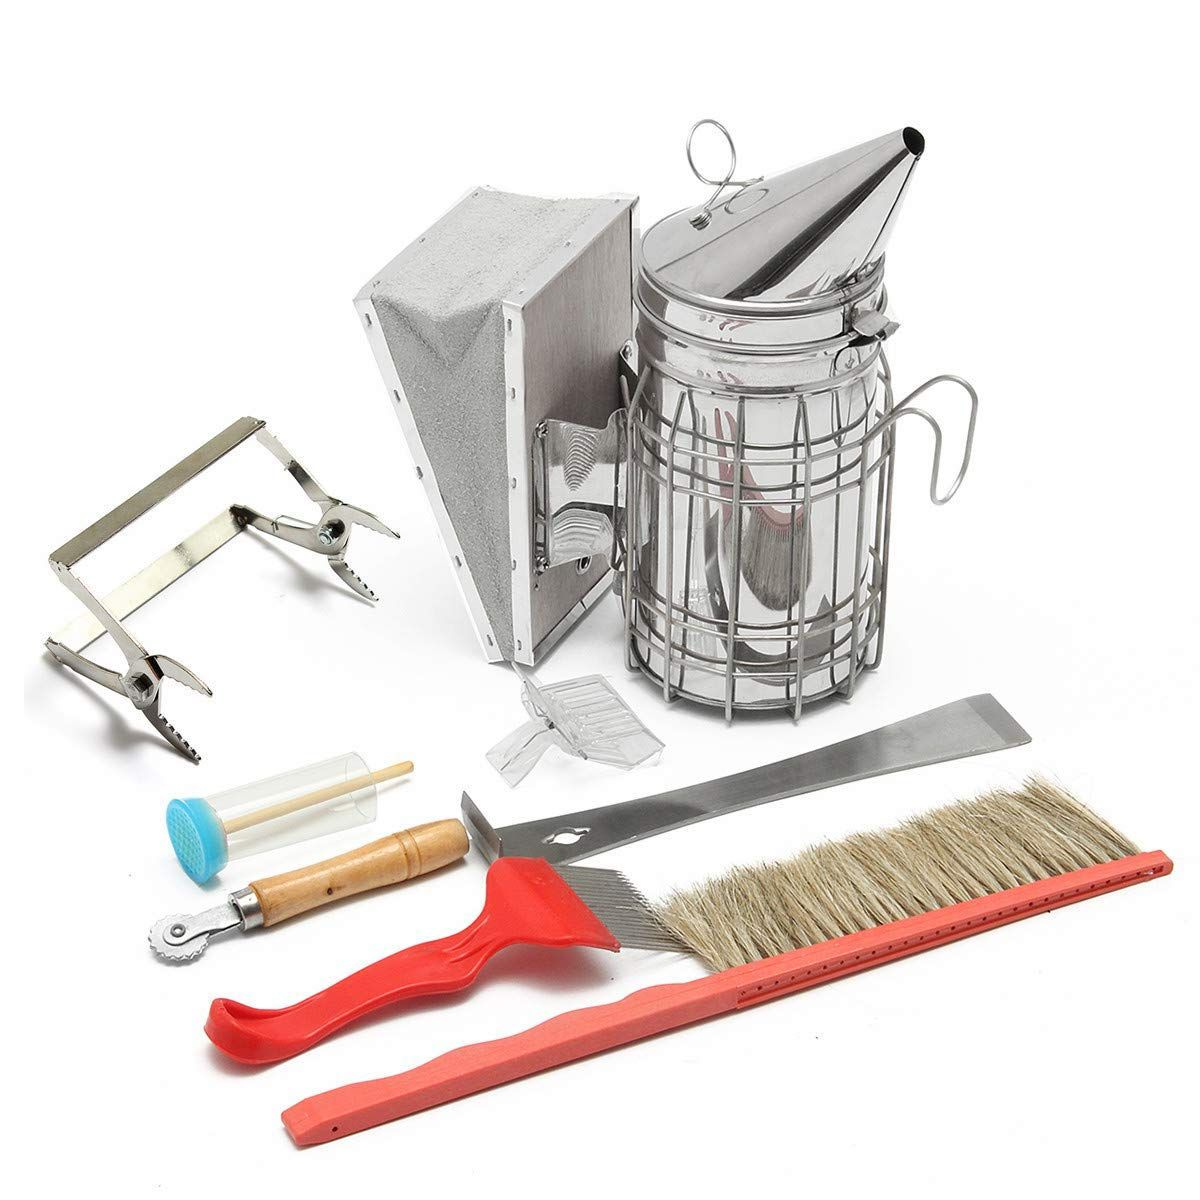 Beekeeping Stainless Steel Smoker Hive tool,Uncapping fork and Brush